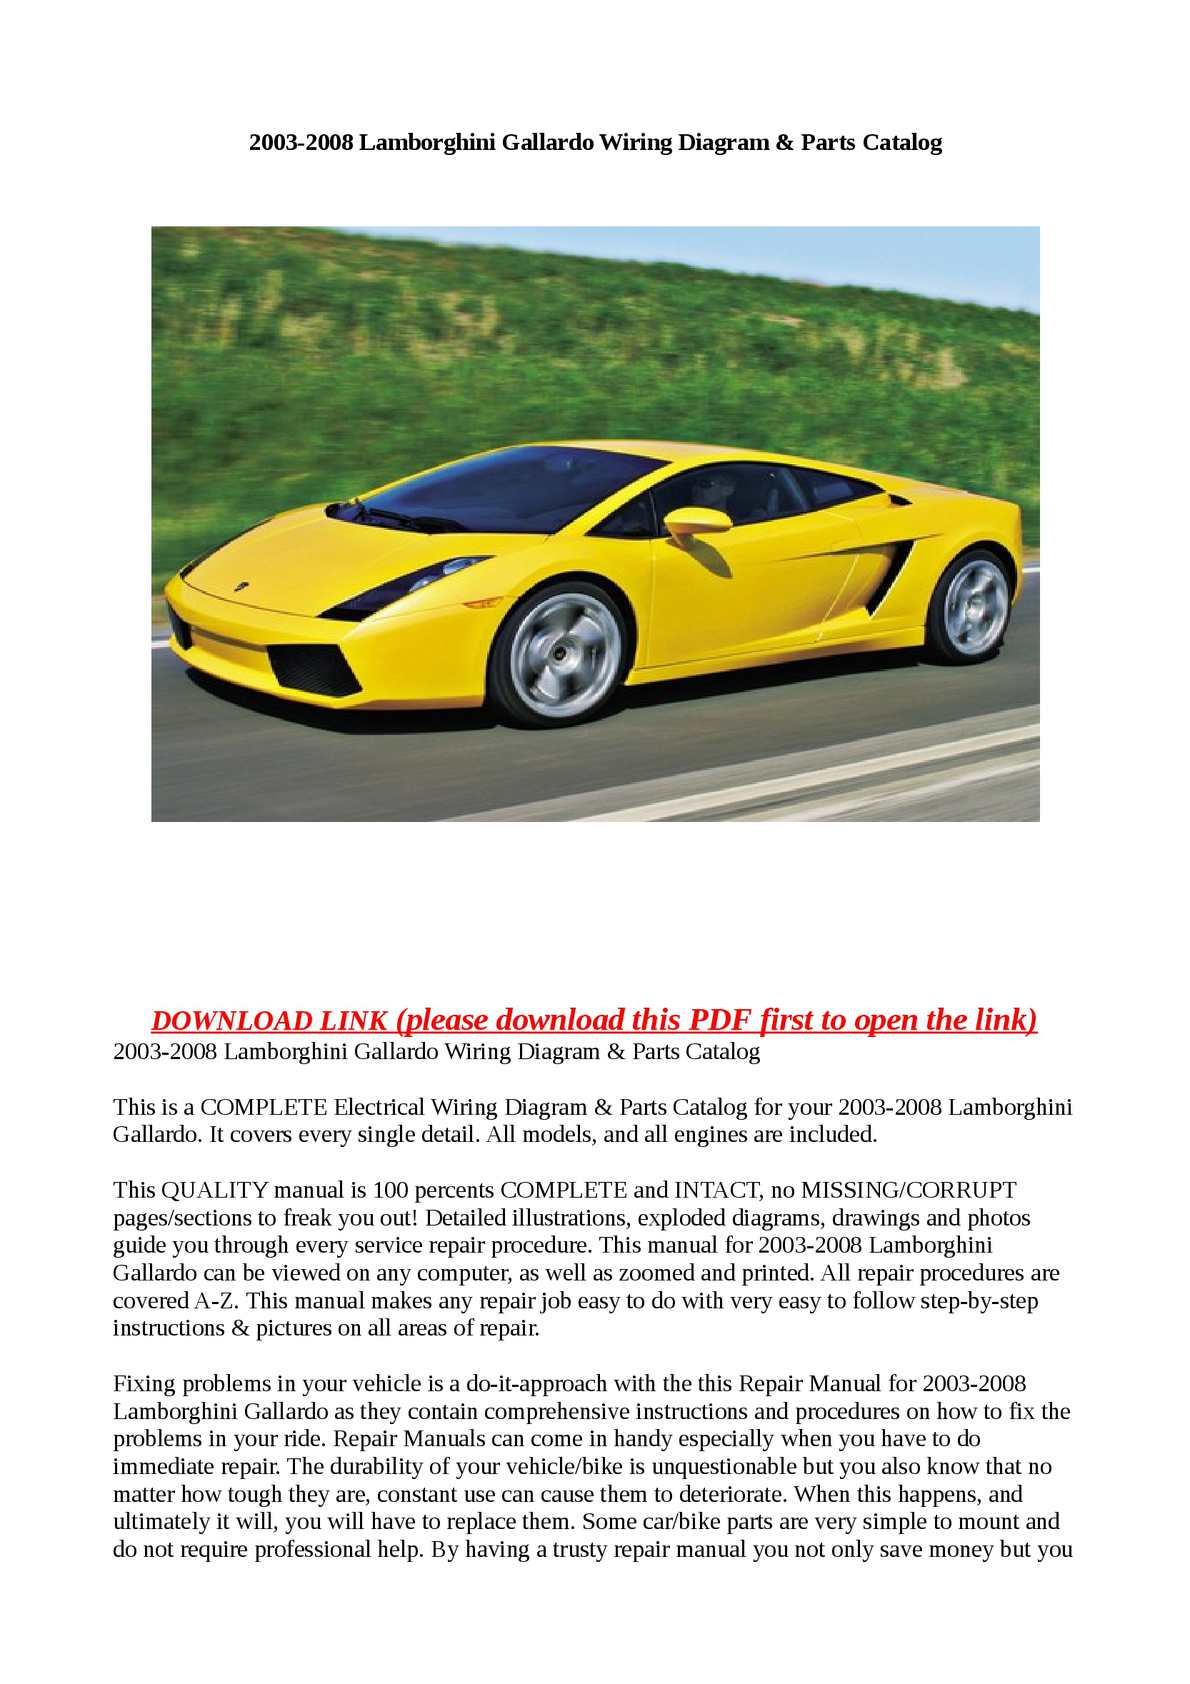 hight resolution of calam o 2003 2008 lamborghini gallardo wiring diagram parts catalog lamborghini murcielago wiring diagram lamborghini wiring diagram